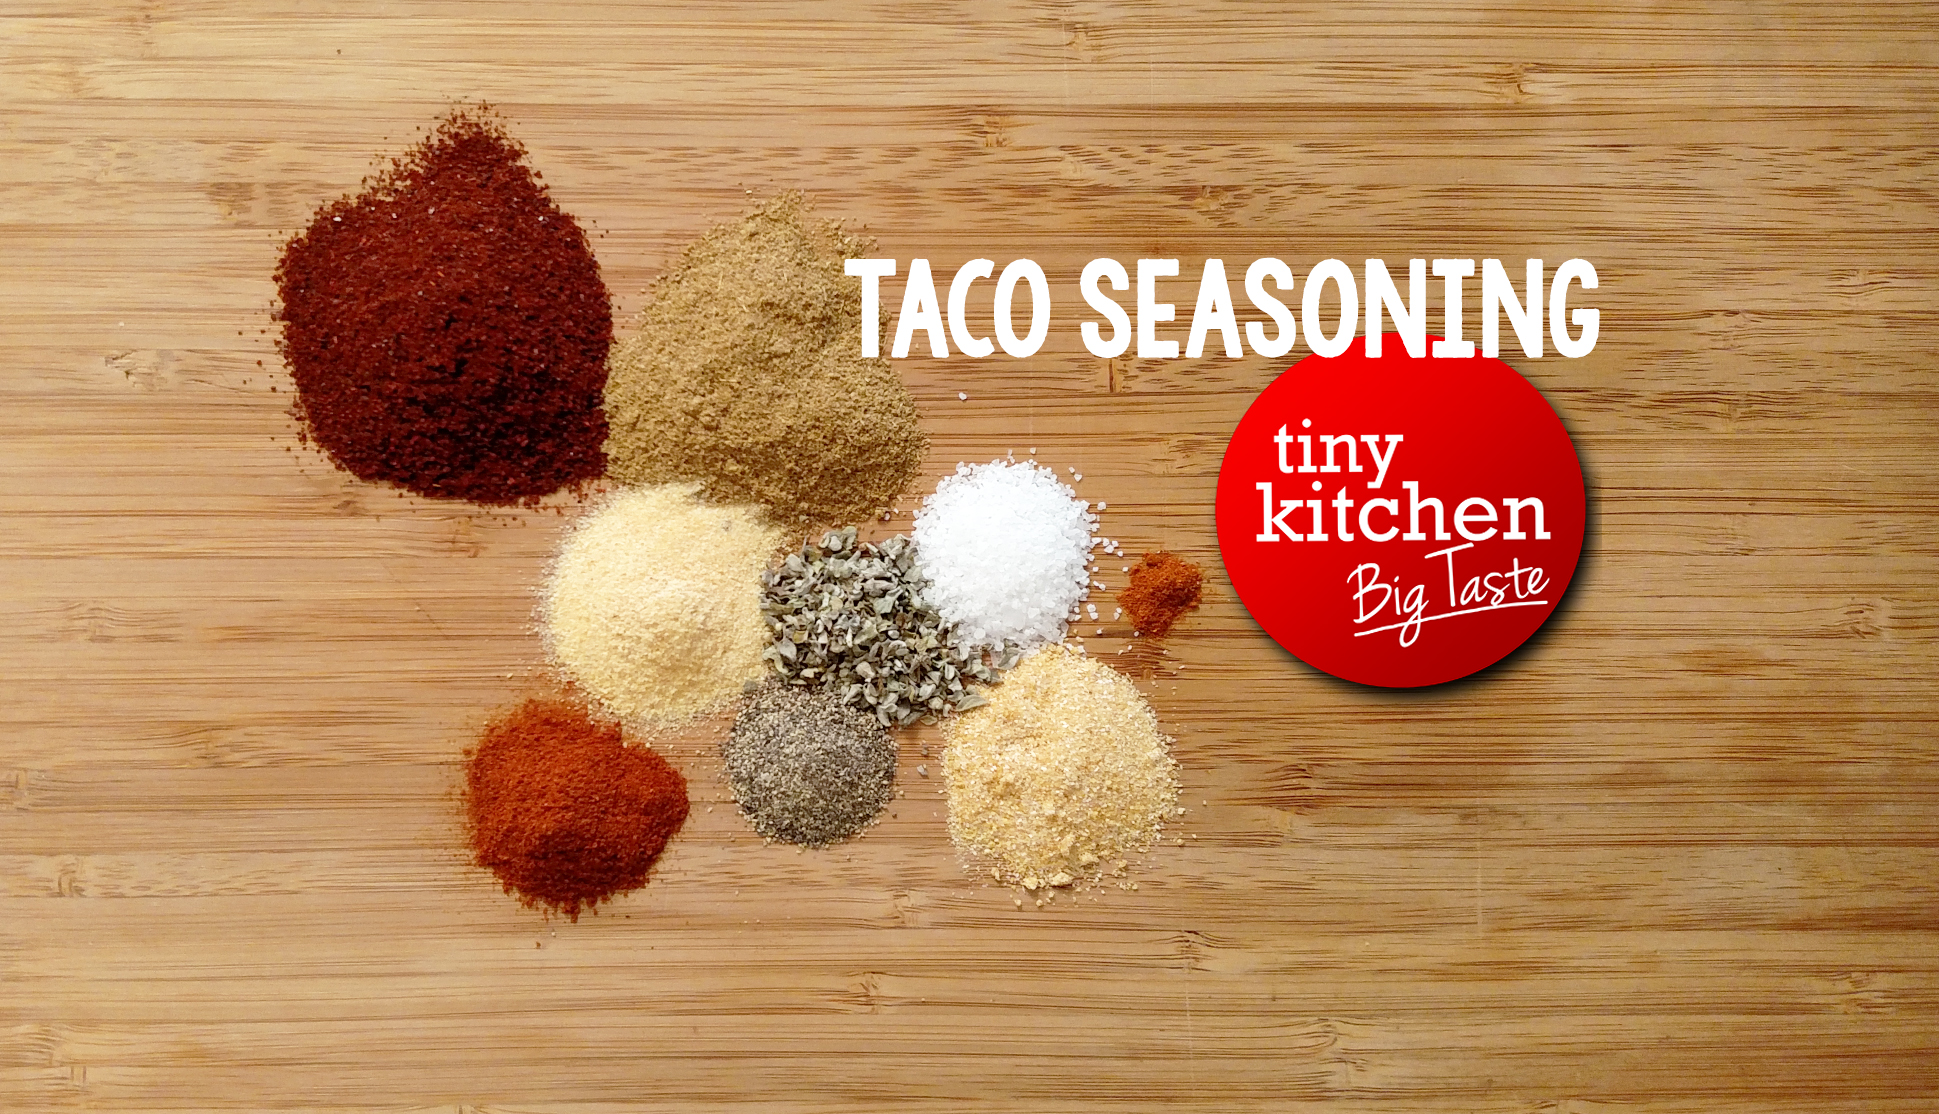 Taco Seasoning // Tiny Kitchen Big Taste